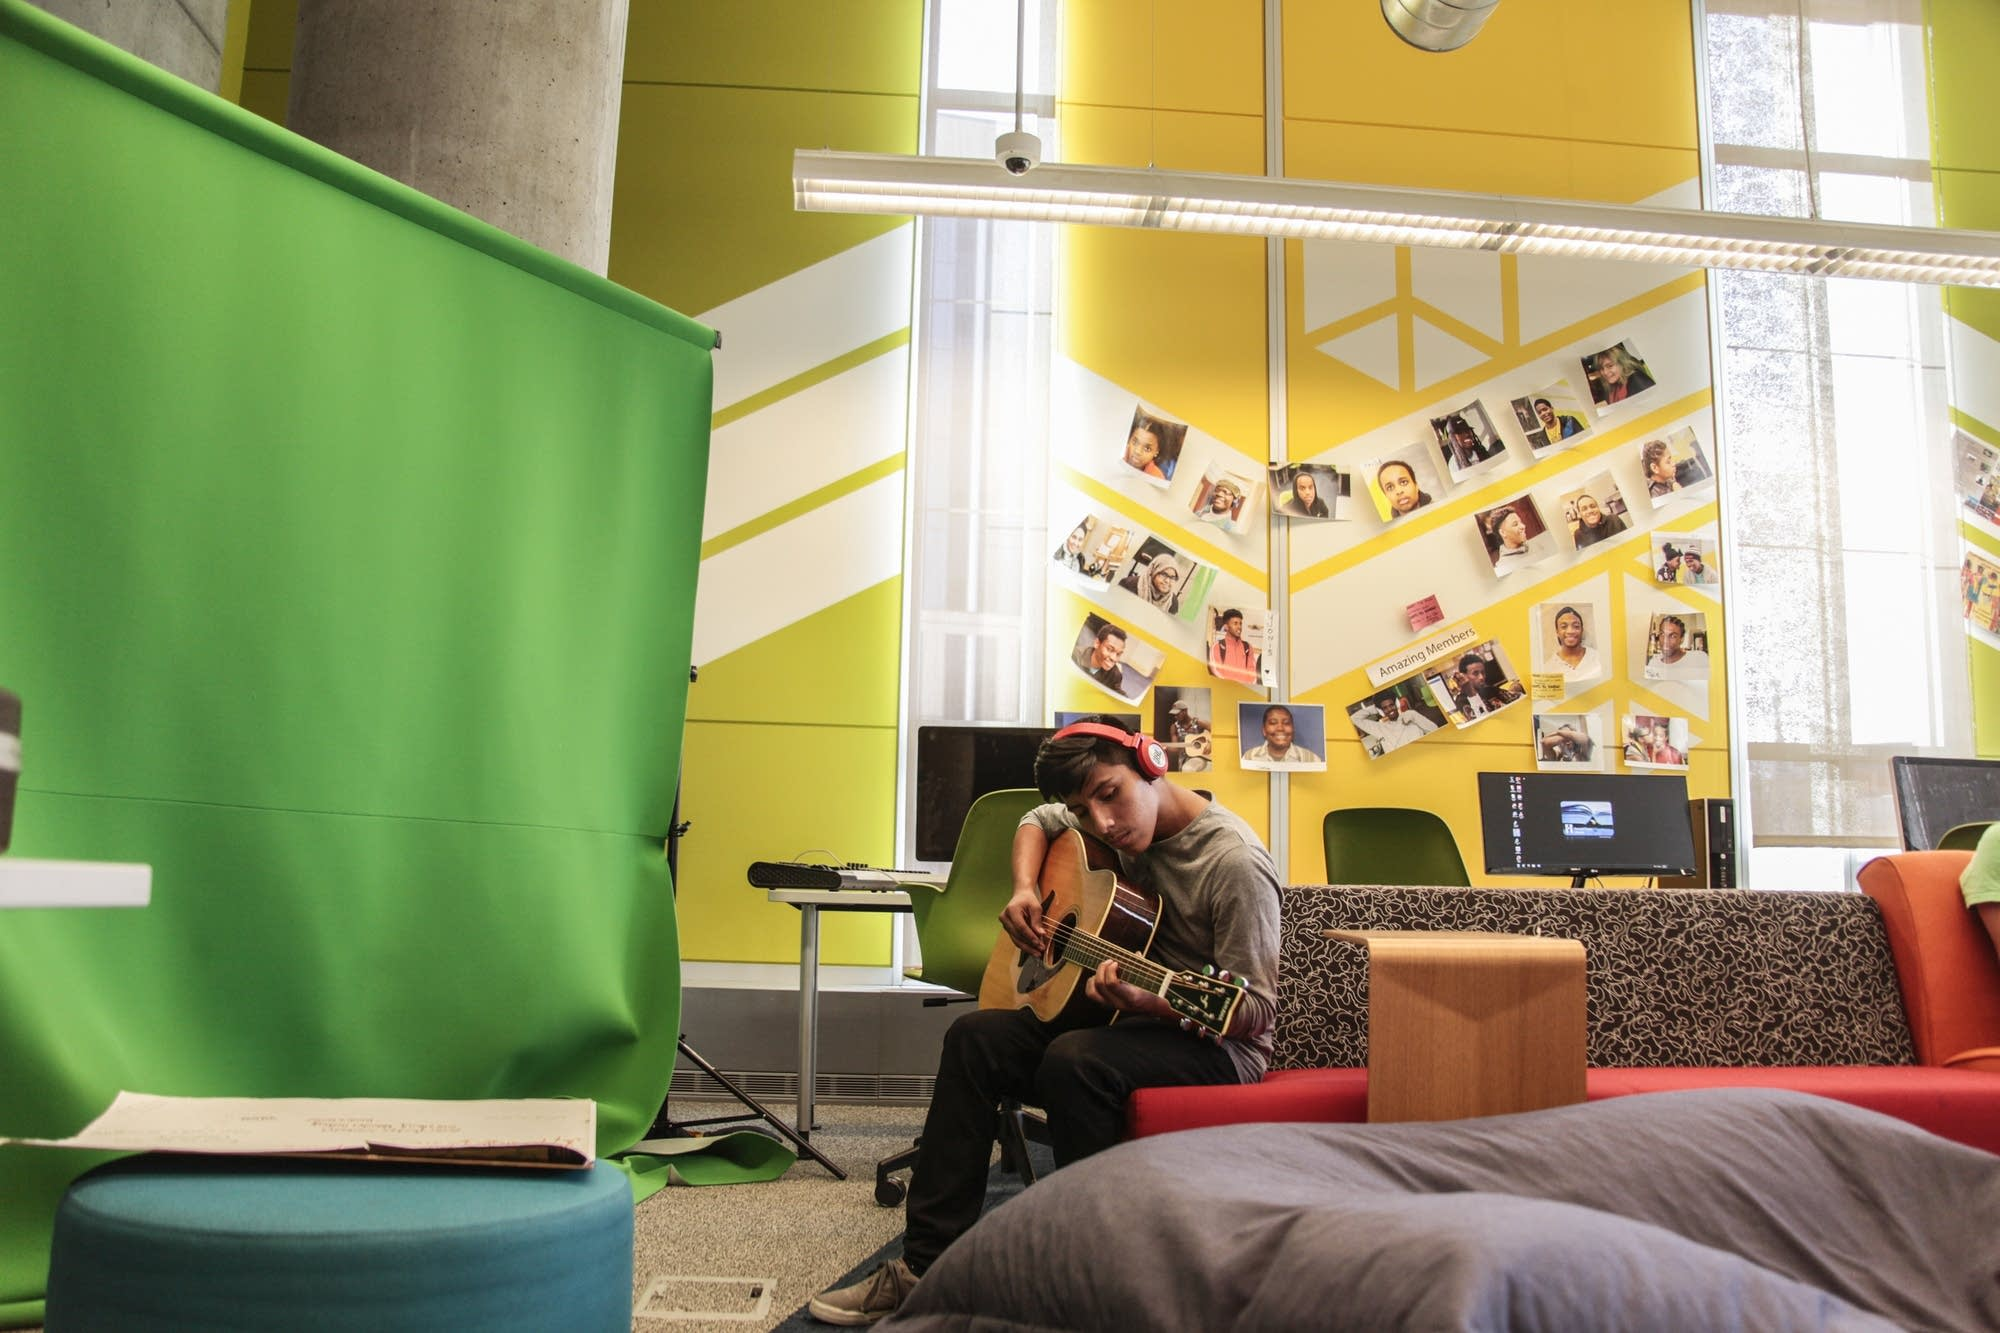 Donny Chiqui plays the guitar by the green screen at the teen tech center.